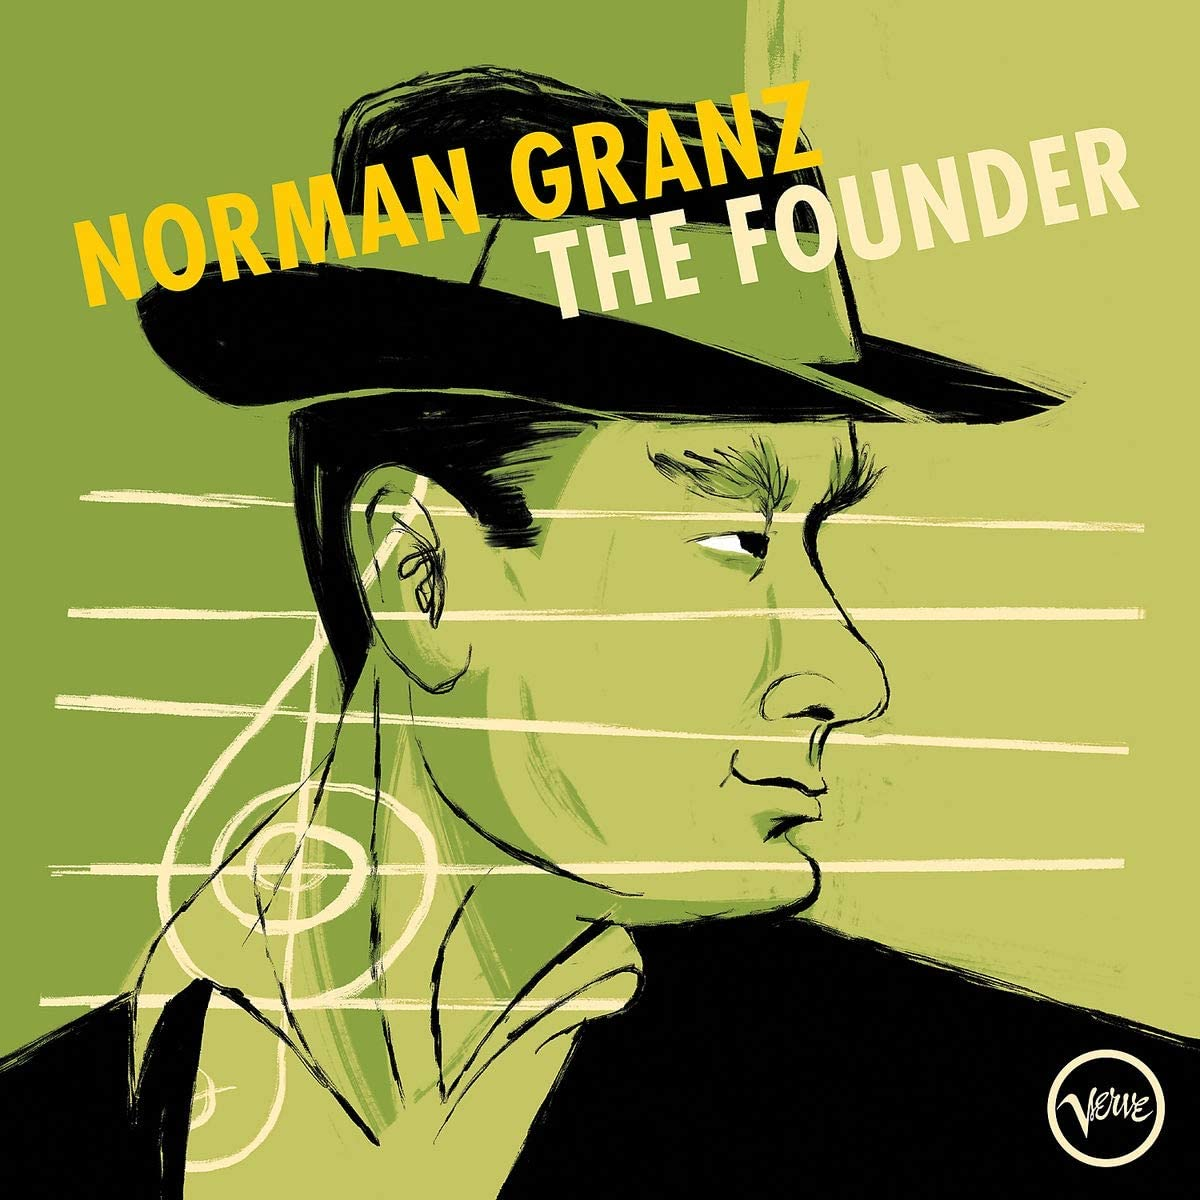 Granz, Norman/The Founder (4CD) [CD]